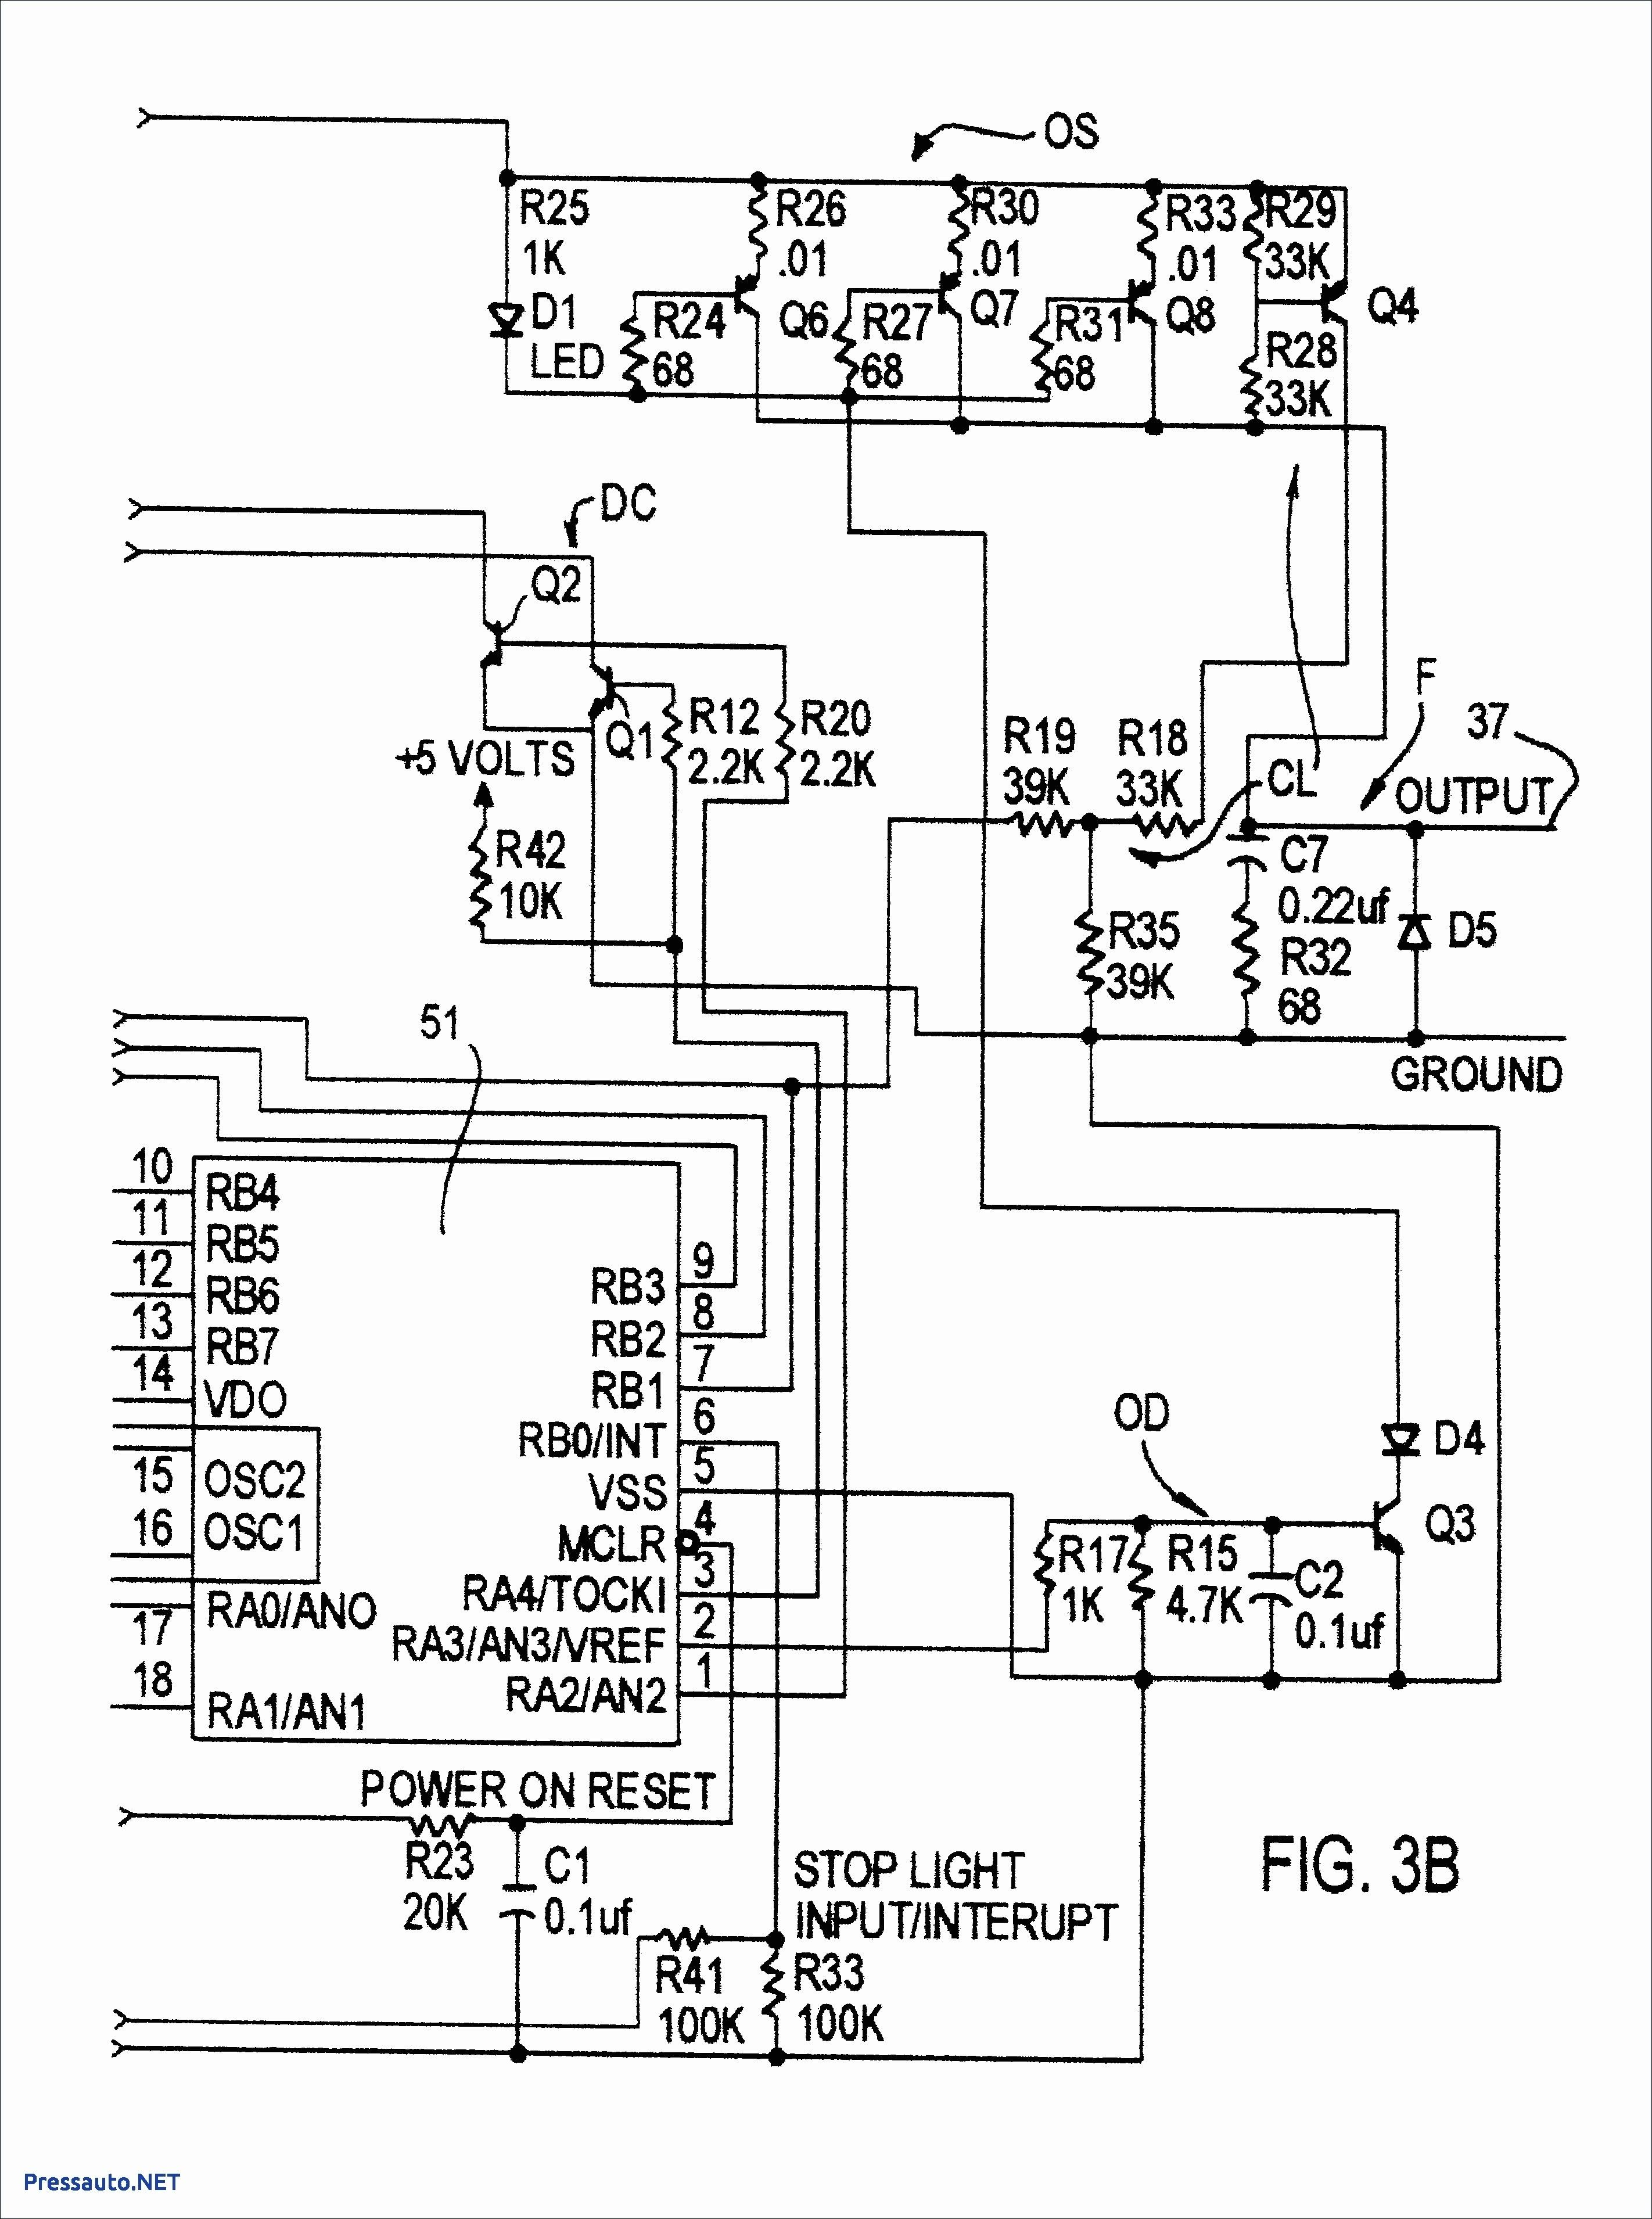 New Wiring Diagram Electric Water Heater Diagram Diagramsample Diagramtemplate Wiringdiagram Diagramchar Trailer Wiring Diagram Diagram Electrical Diagram